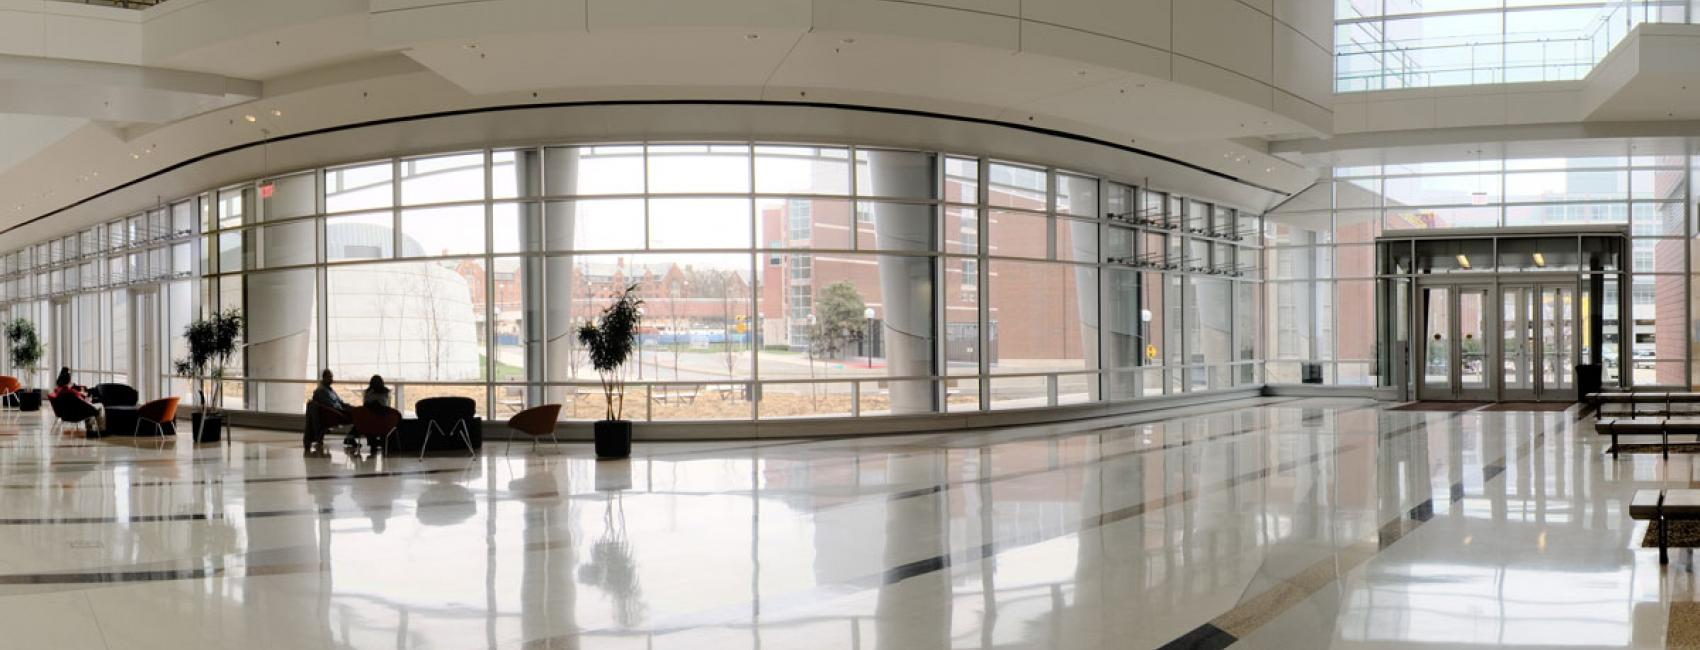 Lobby of the Biomedical Science Research Building